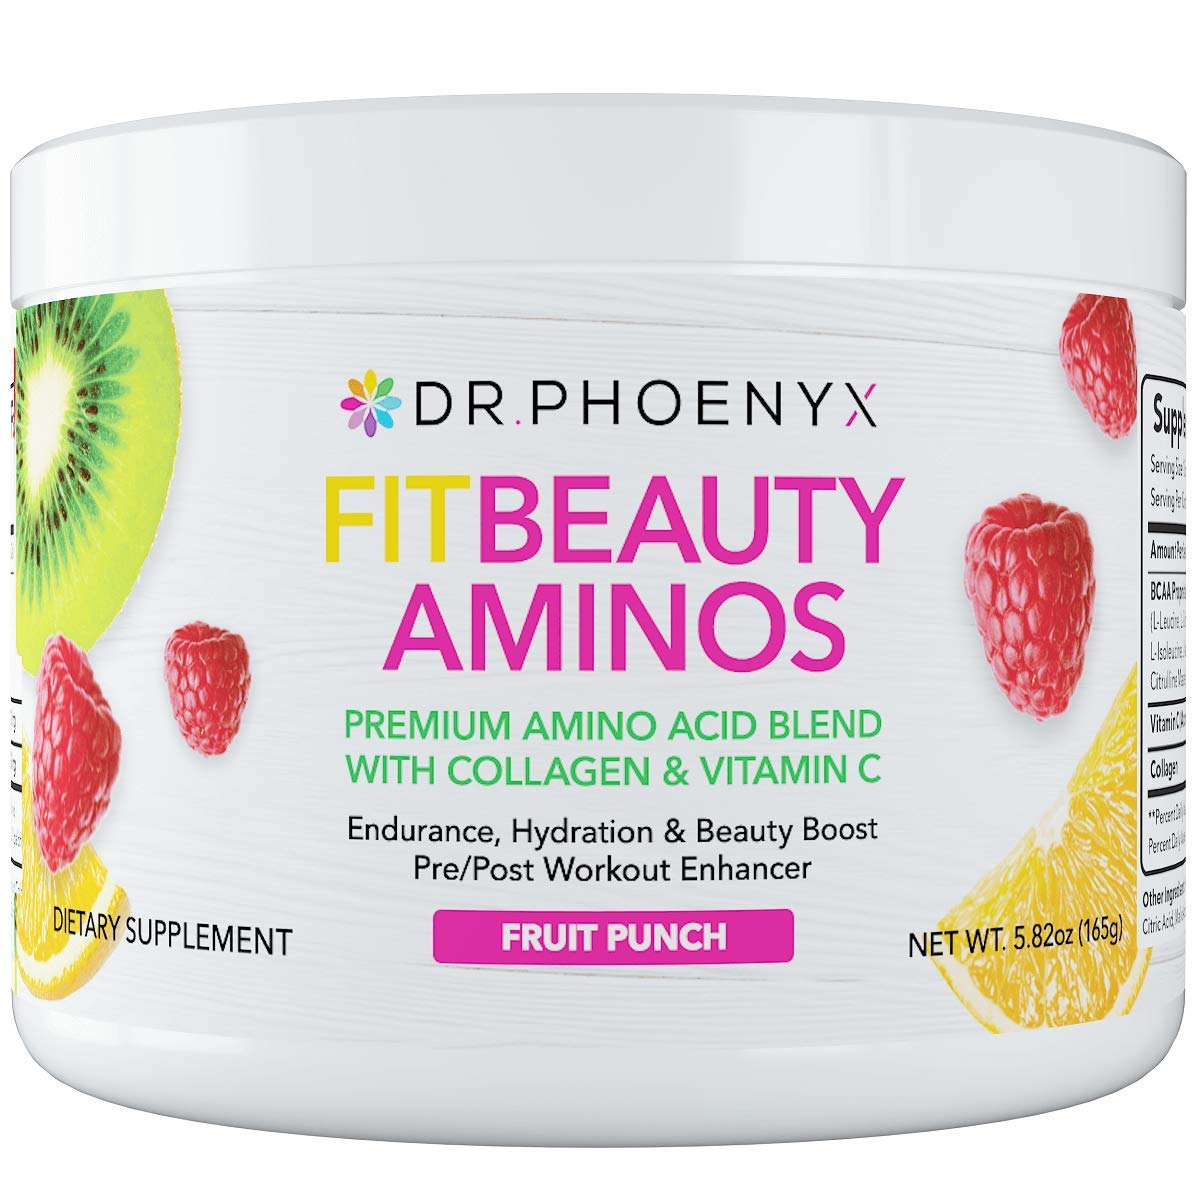 Dr. Phoenyx FitBeauty Amino Acid Blend with Collagen Vitamin C – Hydration Boost, Healthy Metabolism, Healthy Skin – Keto Friendly, Sugar Free Drink Mix, Hair Skin and Nails – Fruit Punch, 30 Serv